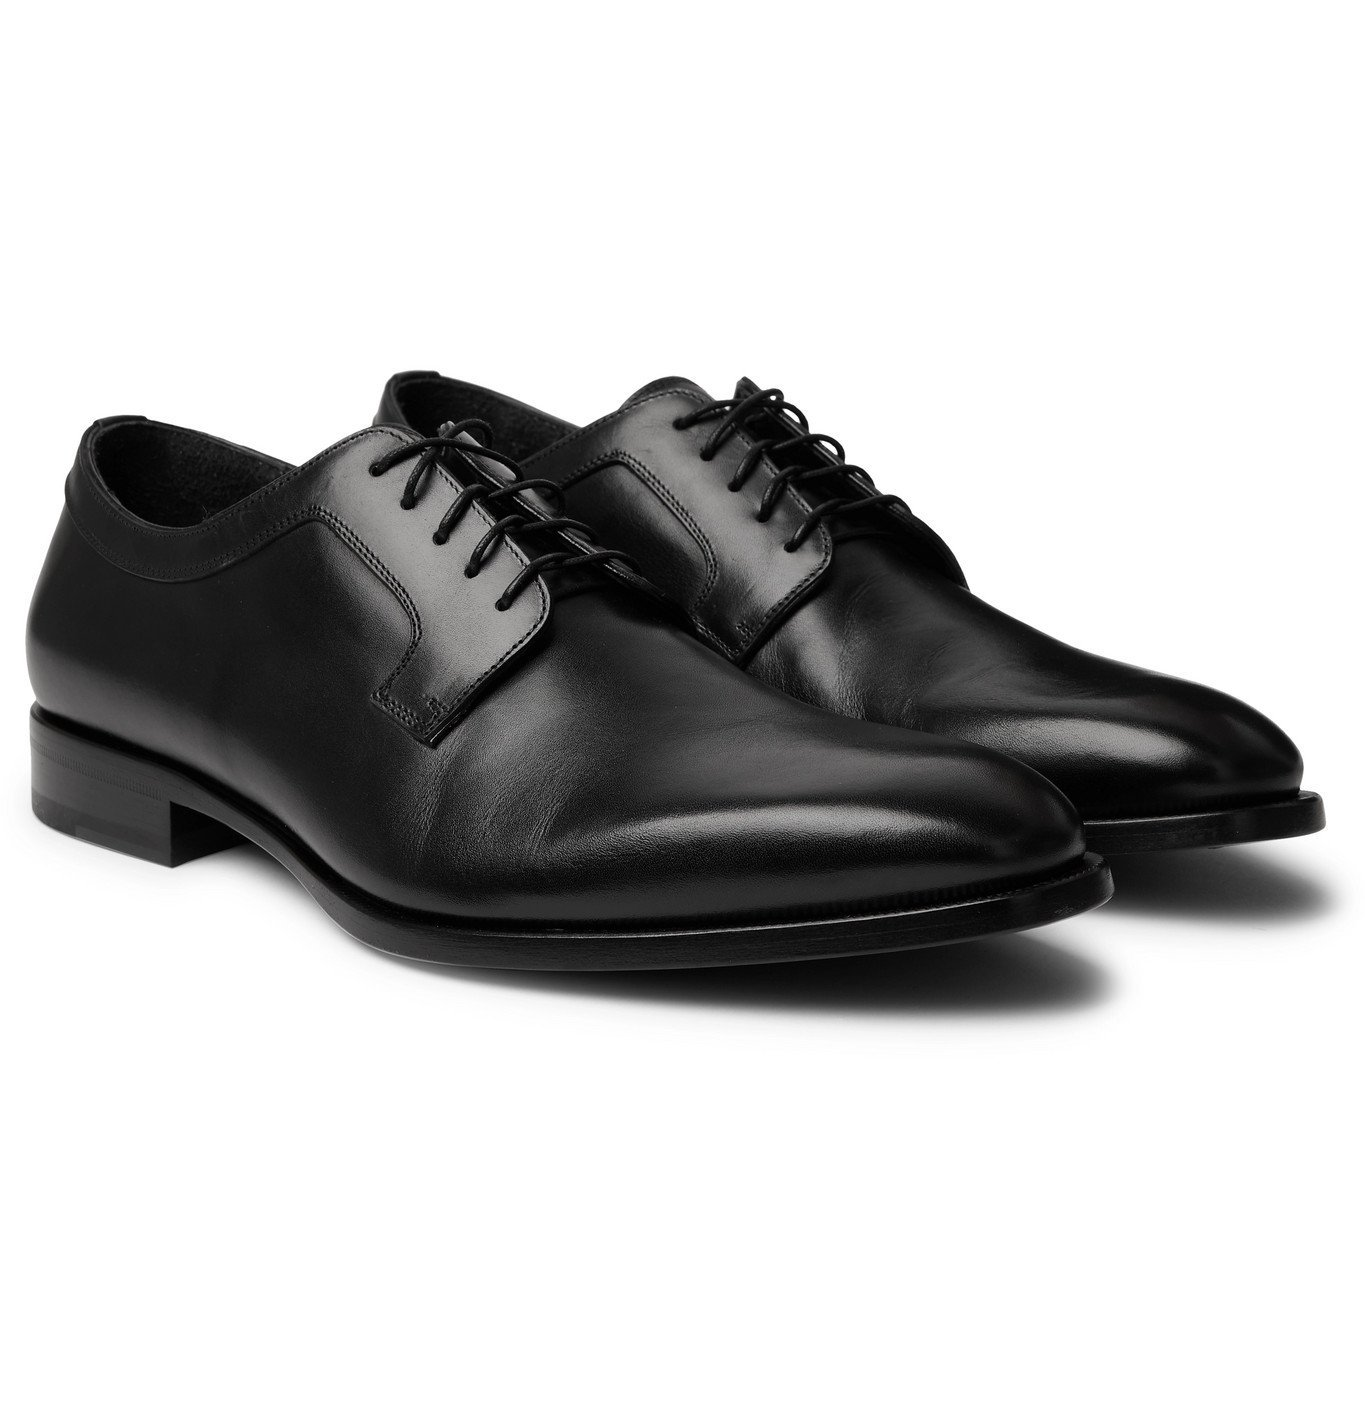 Dunhill - Leather Derby Shoes - Black